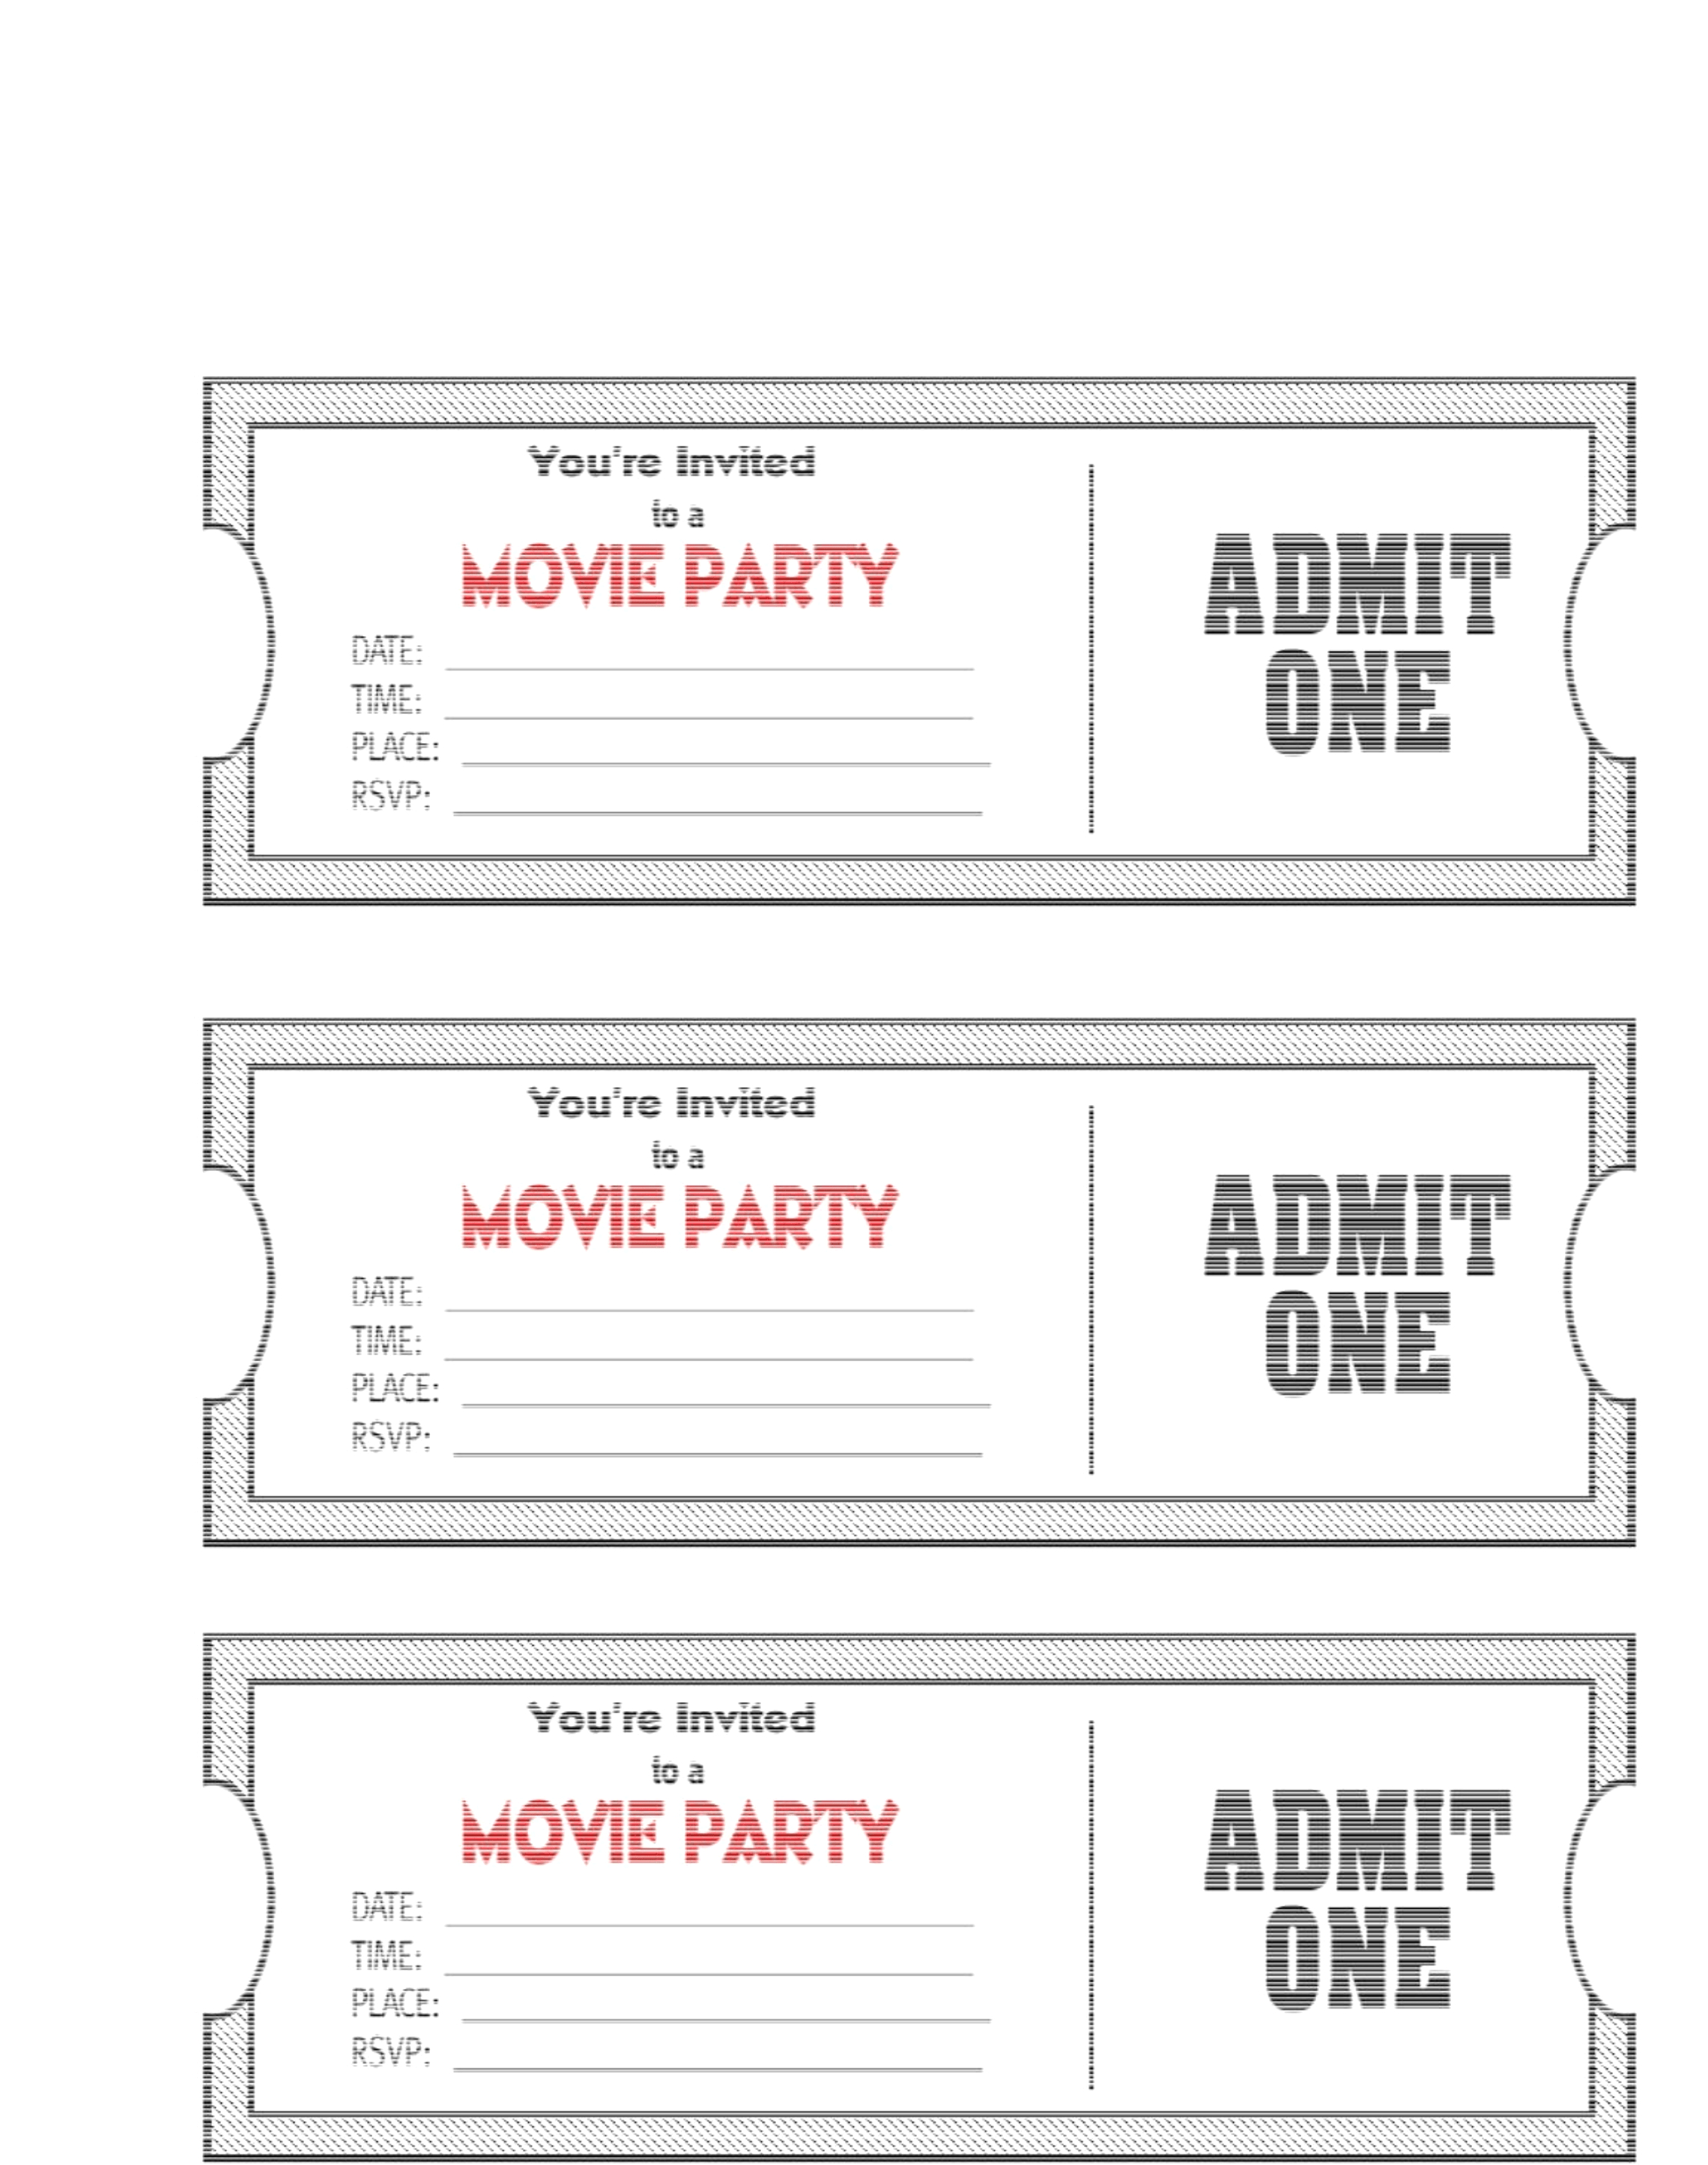 Weekly Status Report Template Excel New Sample Reports Free - Free Printable Movie Ticket Birthday Party Invitations